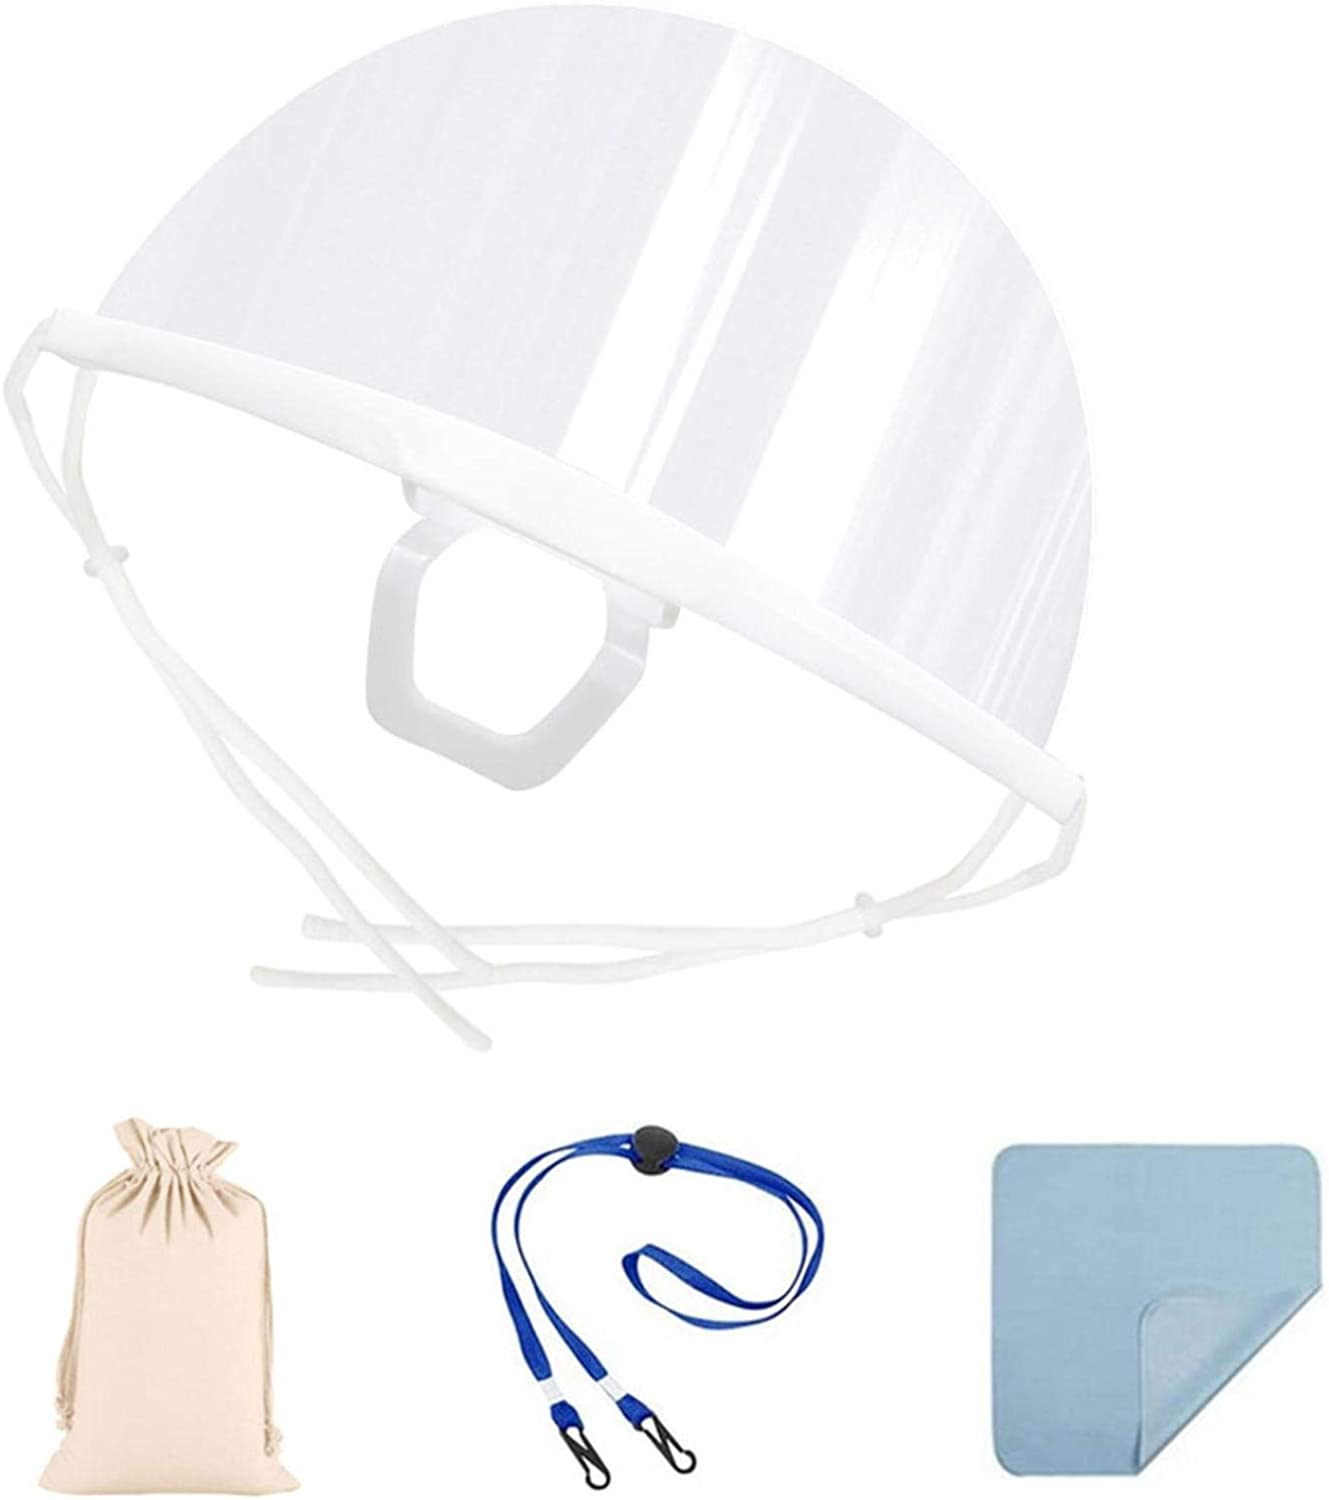 【USA in Stock】Disposable Facemask Set Kitchen Oil Splat Protect Safe Glasses Guard All-Round Protection Mini Guard with Clear Anti-Fog Lens Lightweight Transparent Shield to Protect Face (1 x White)